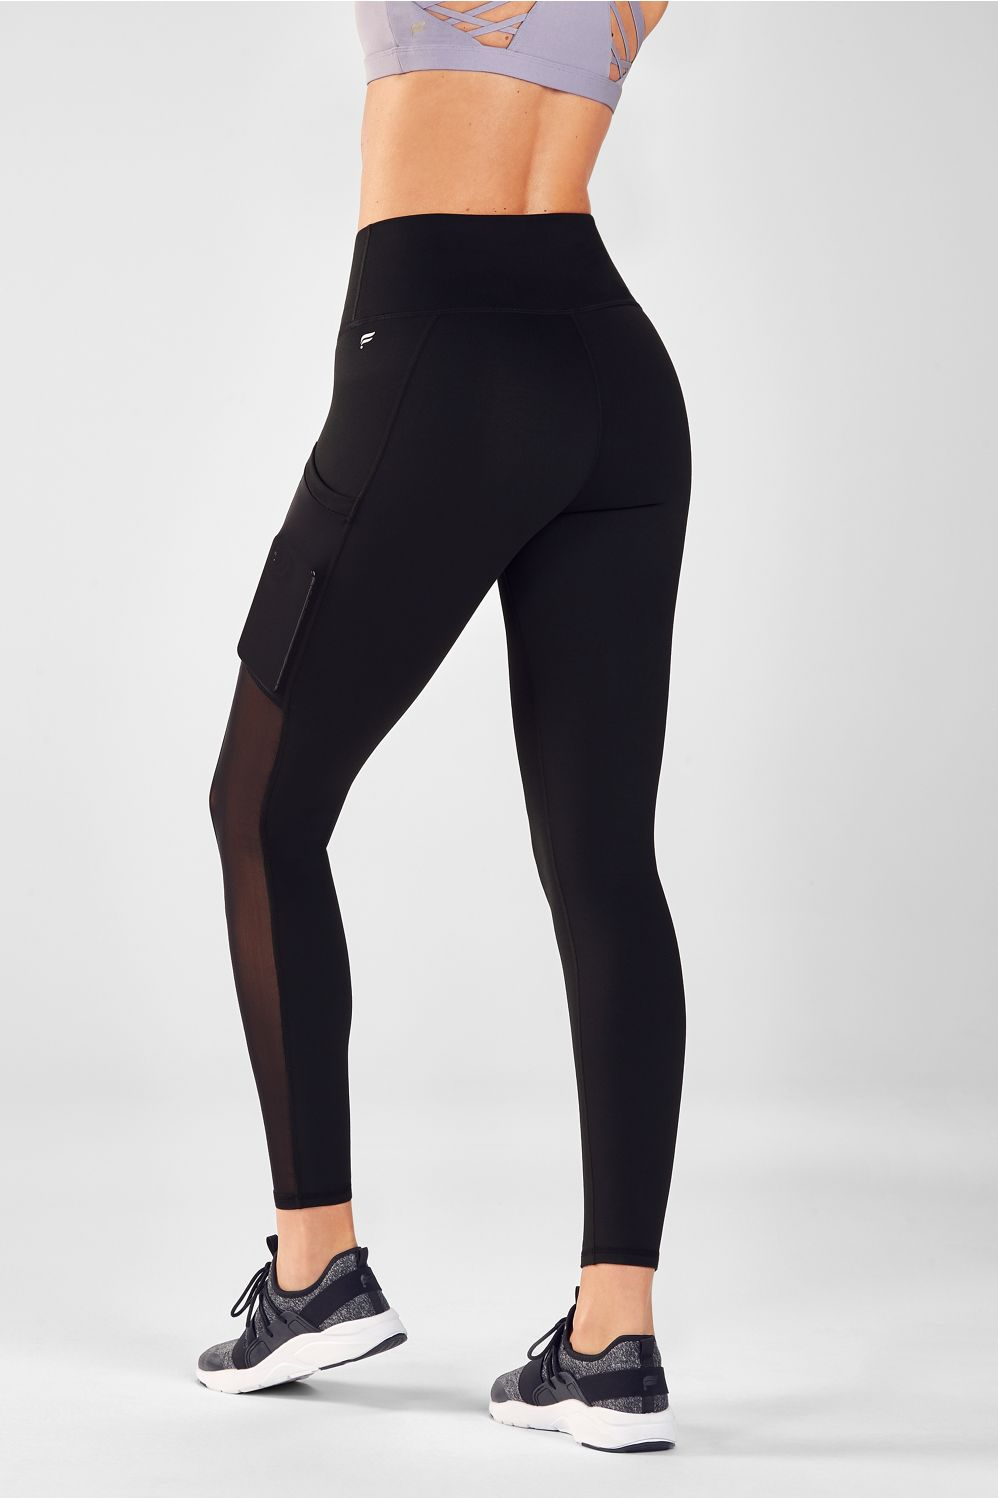 Mila High-Waisted Pocket Legging - Black (Mesh)